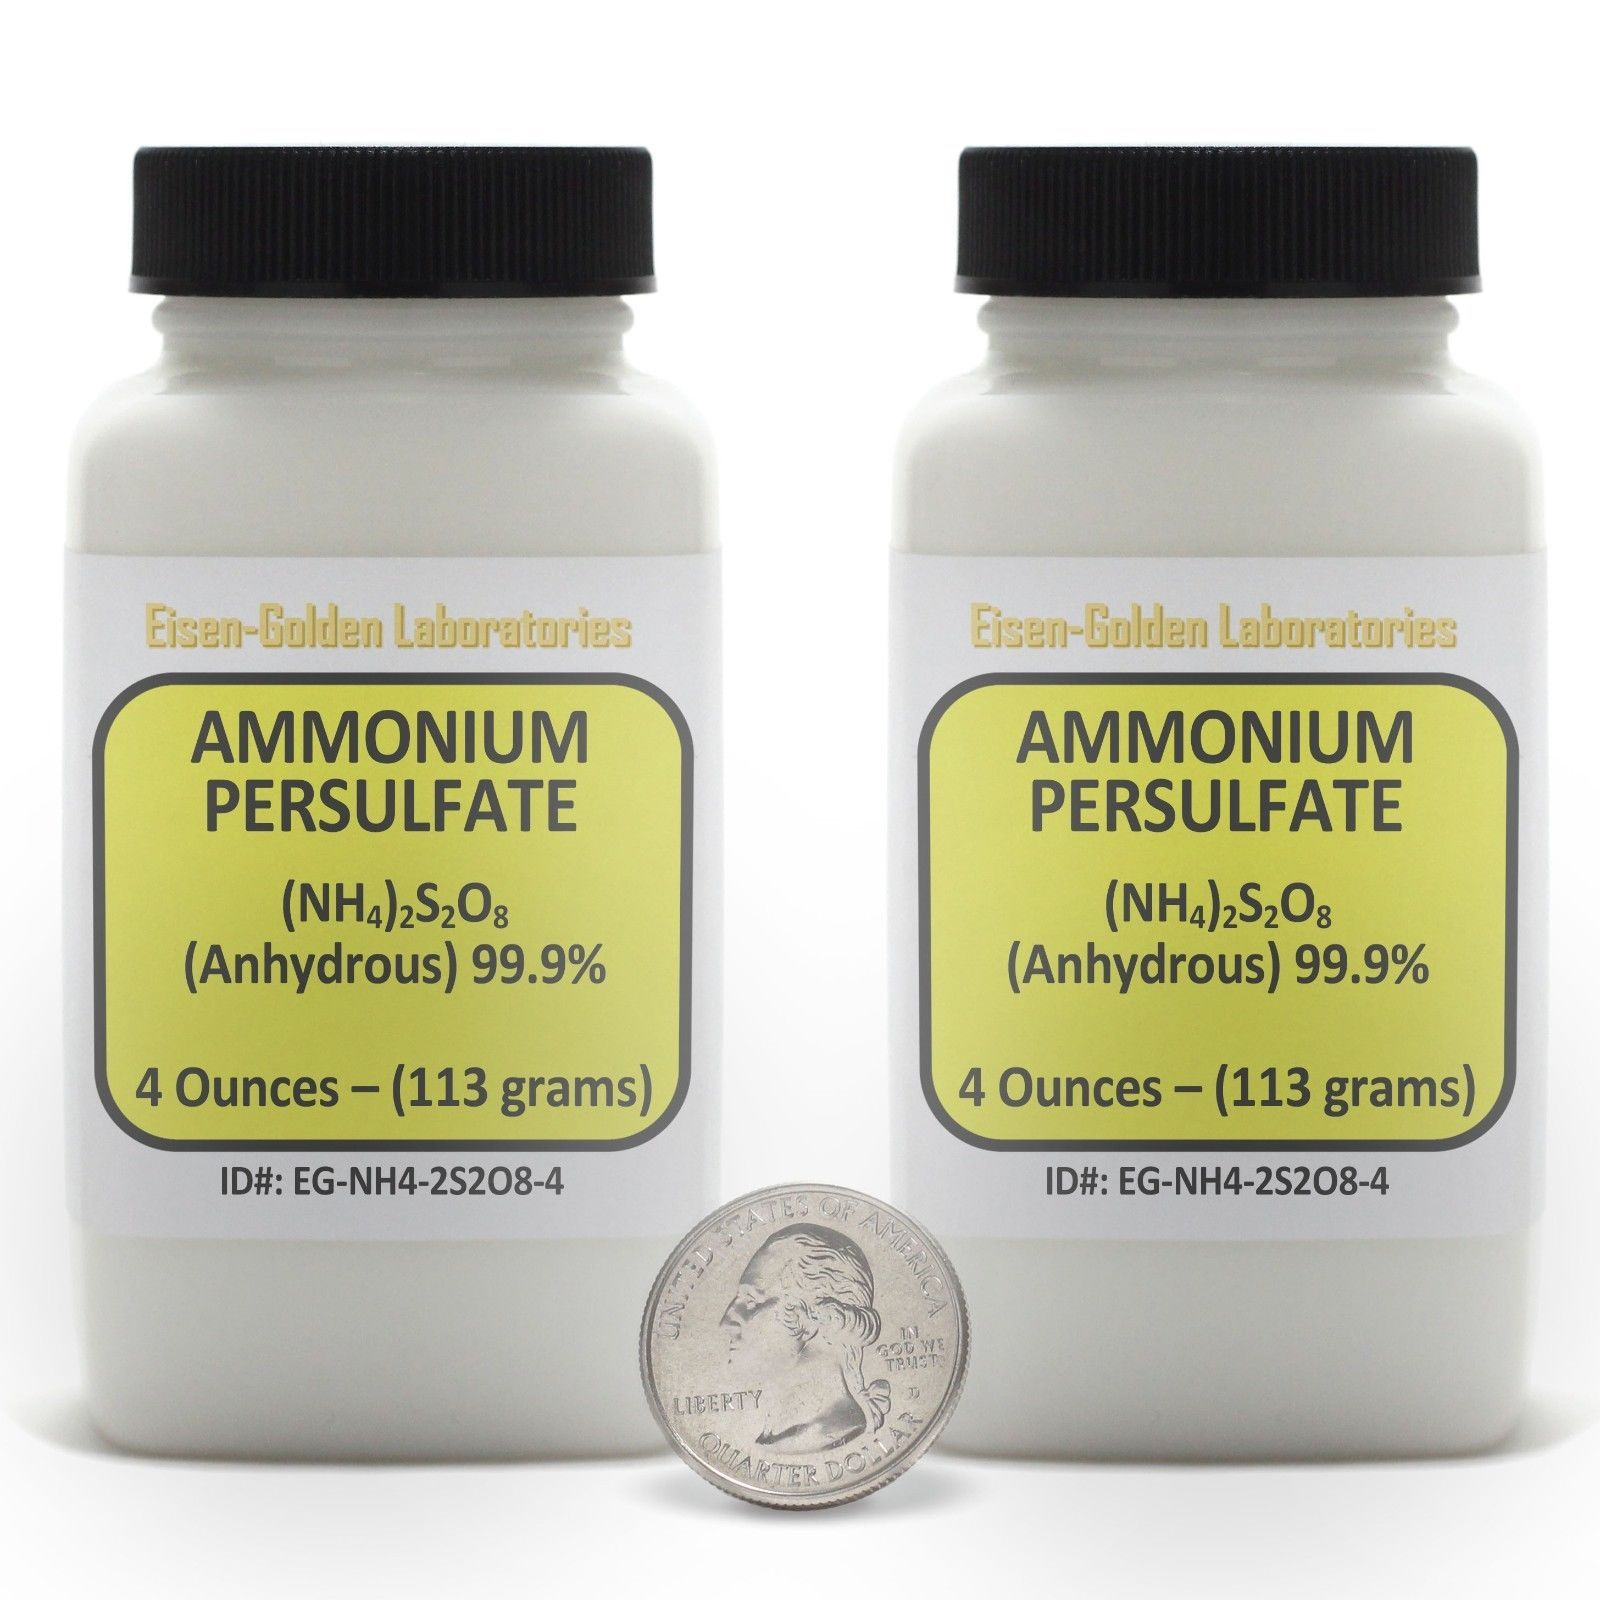 Ammonium Persulfate [(NH4)2S2O8] 99.9% ACS Grade Powder 8 Oz in Two Bottles USA